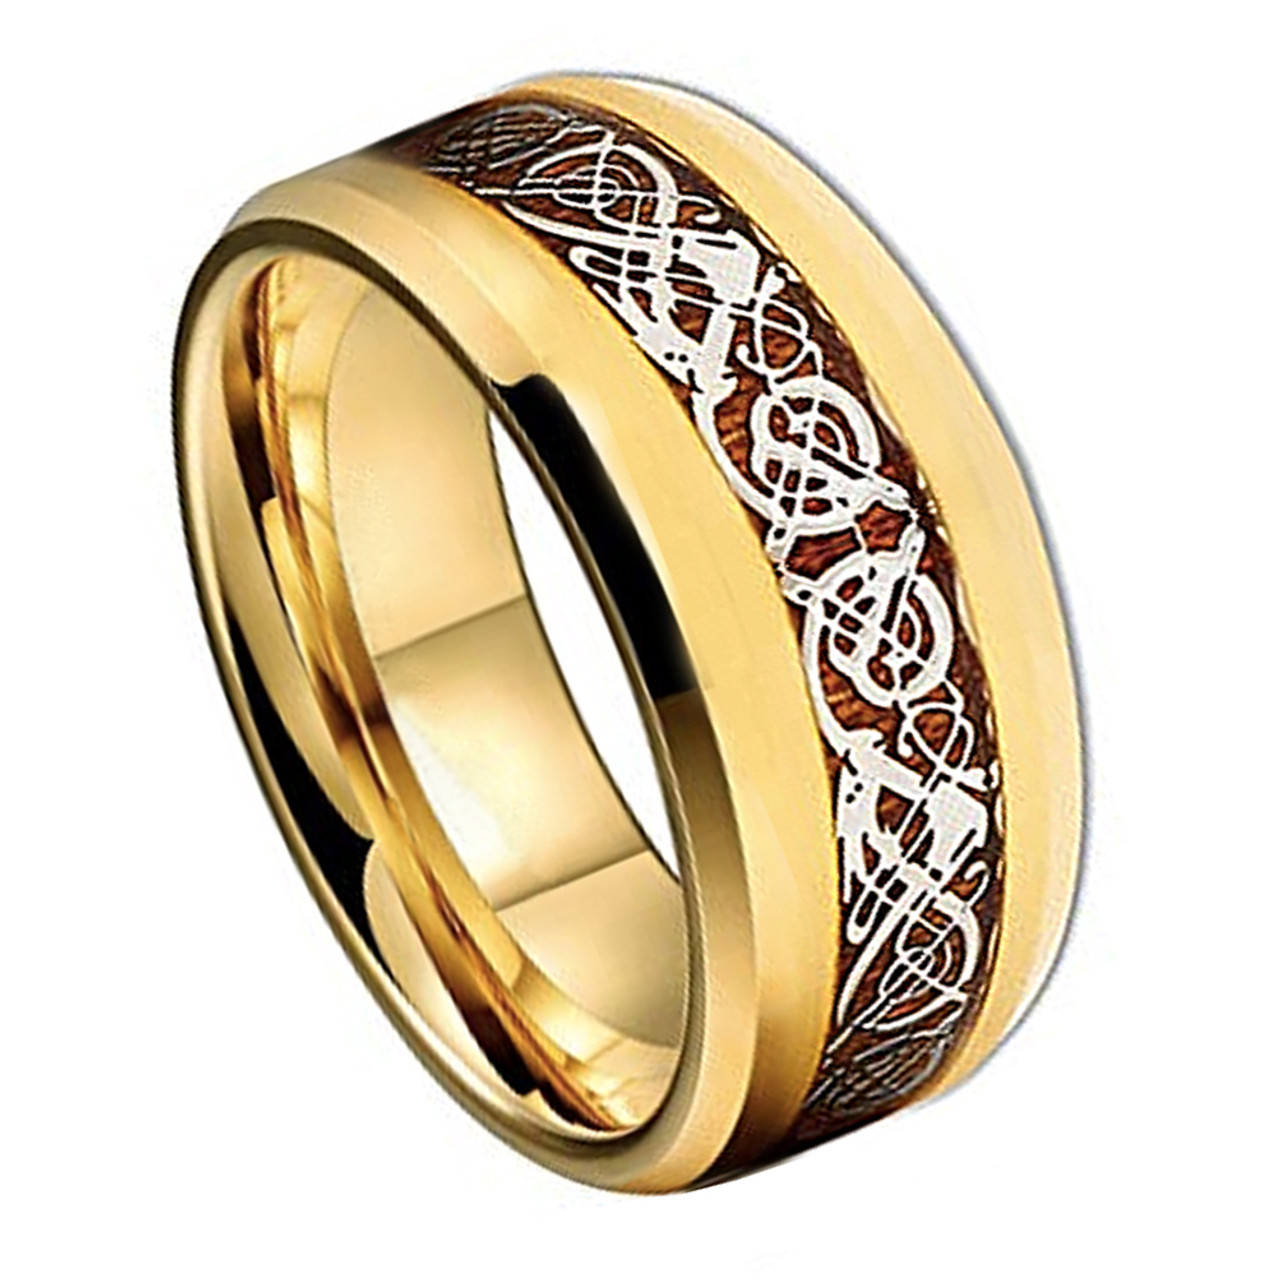 8mm Unisex Or Men S Titanium Wedding Ring Band Gold Band With Wood